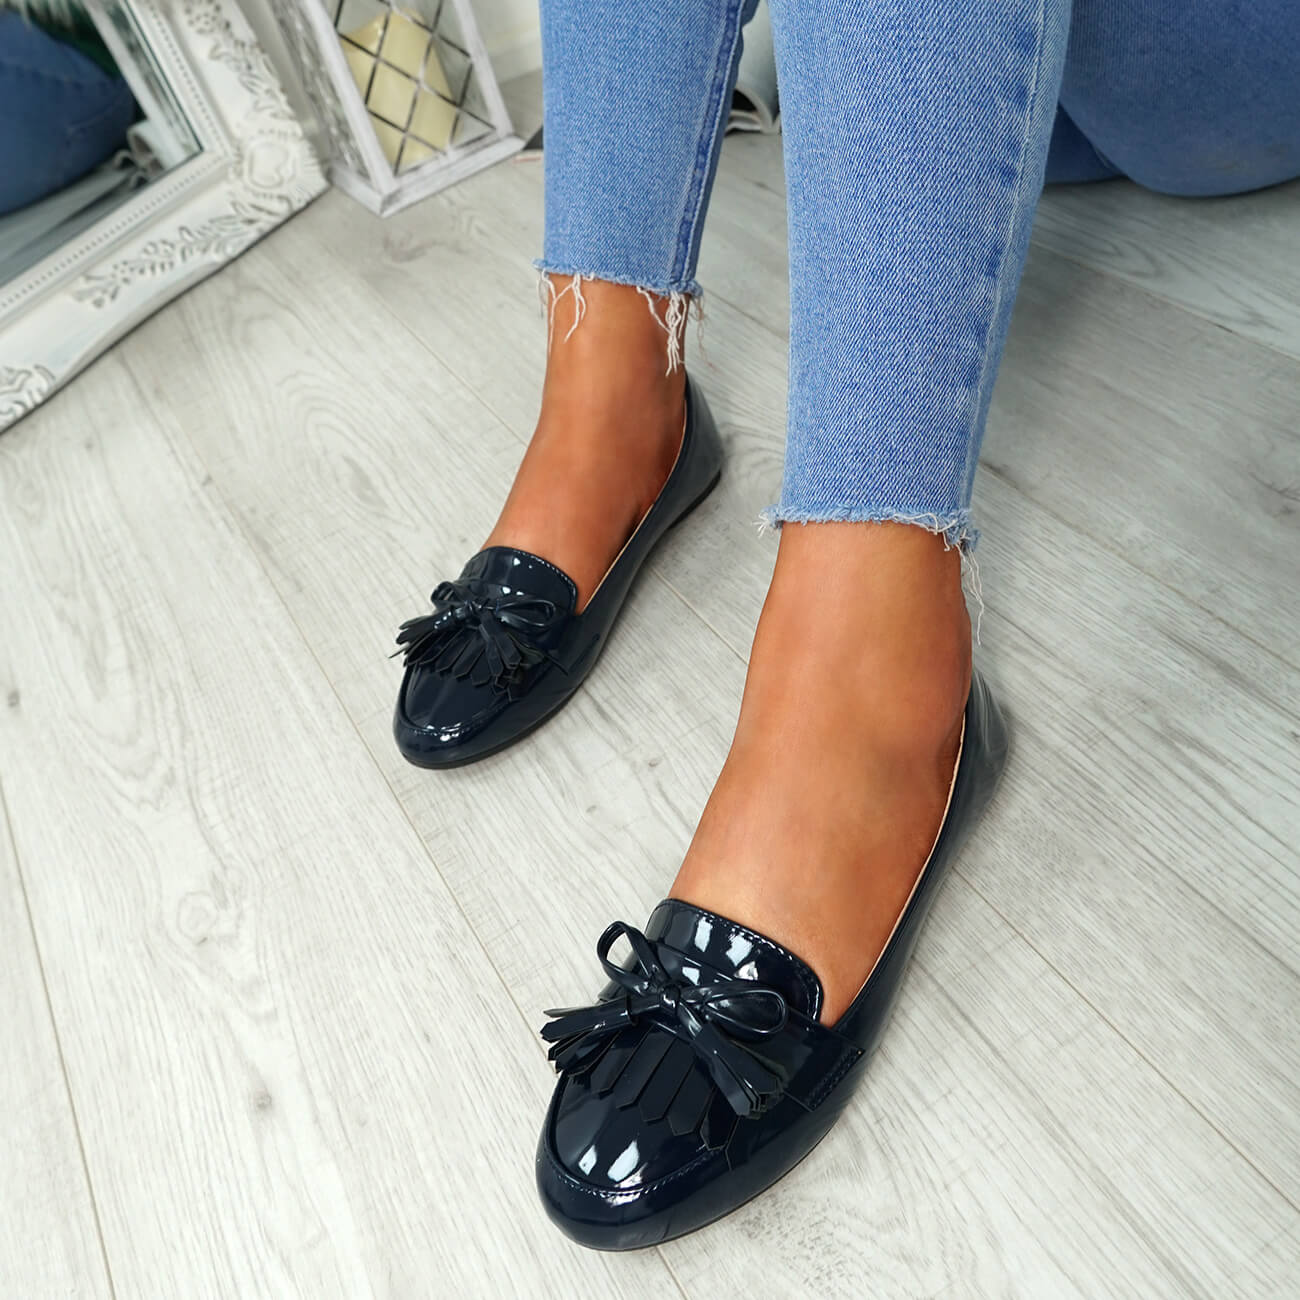 WOMENS-LADIES-FRINGE-BALLERINAS-SLIP-ON-FLAT-DOLLY-PUMPS-CASUAL-SMART-SHOES-SIZE thumbnail 19